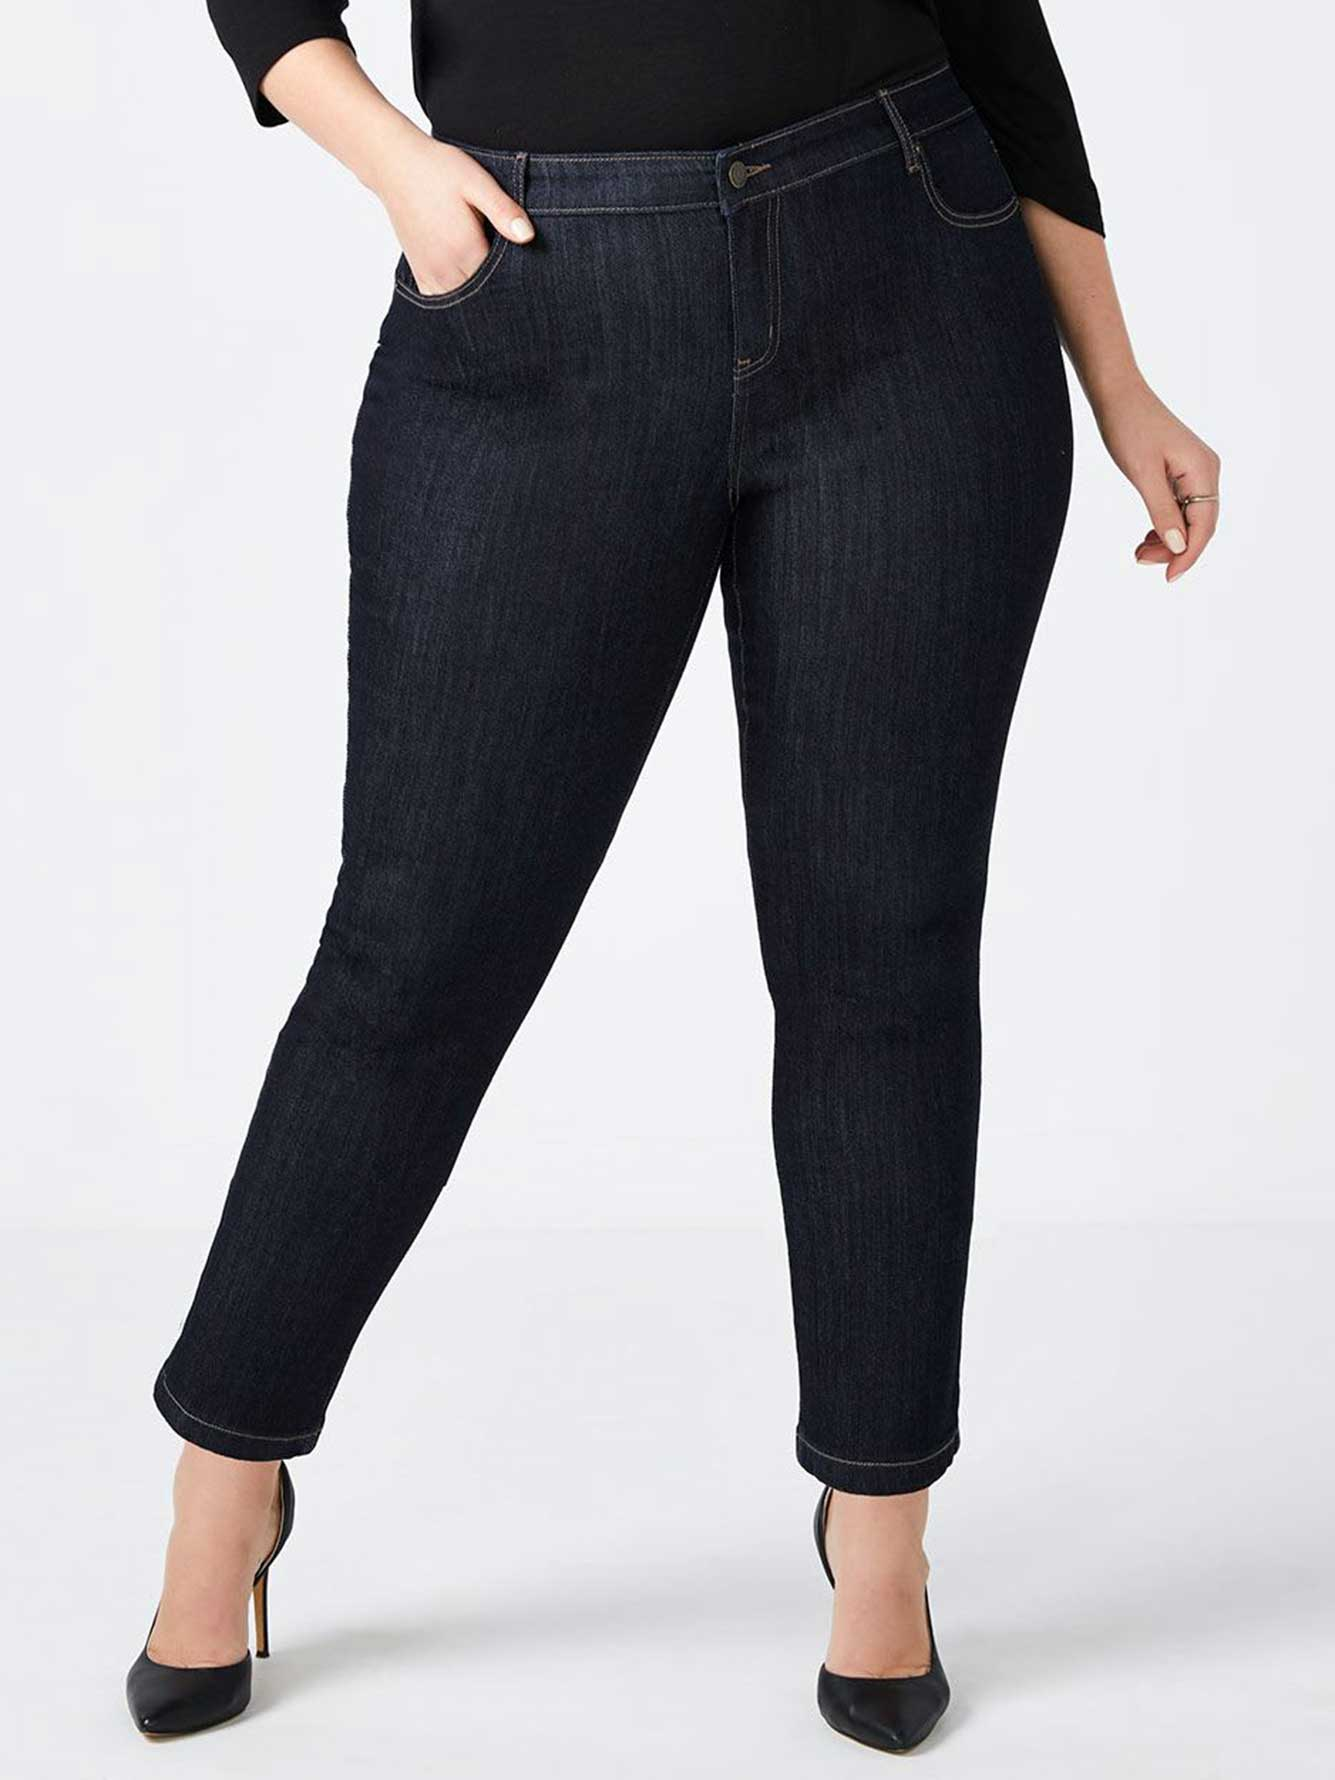 41b364df0af Petite Slightly Curvy Fit Straight Leg Jean - d c JEANS